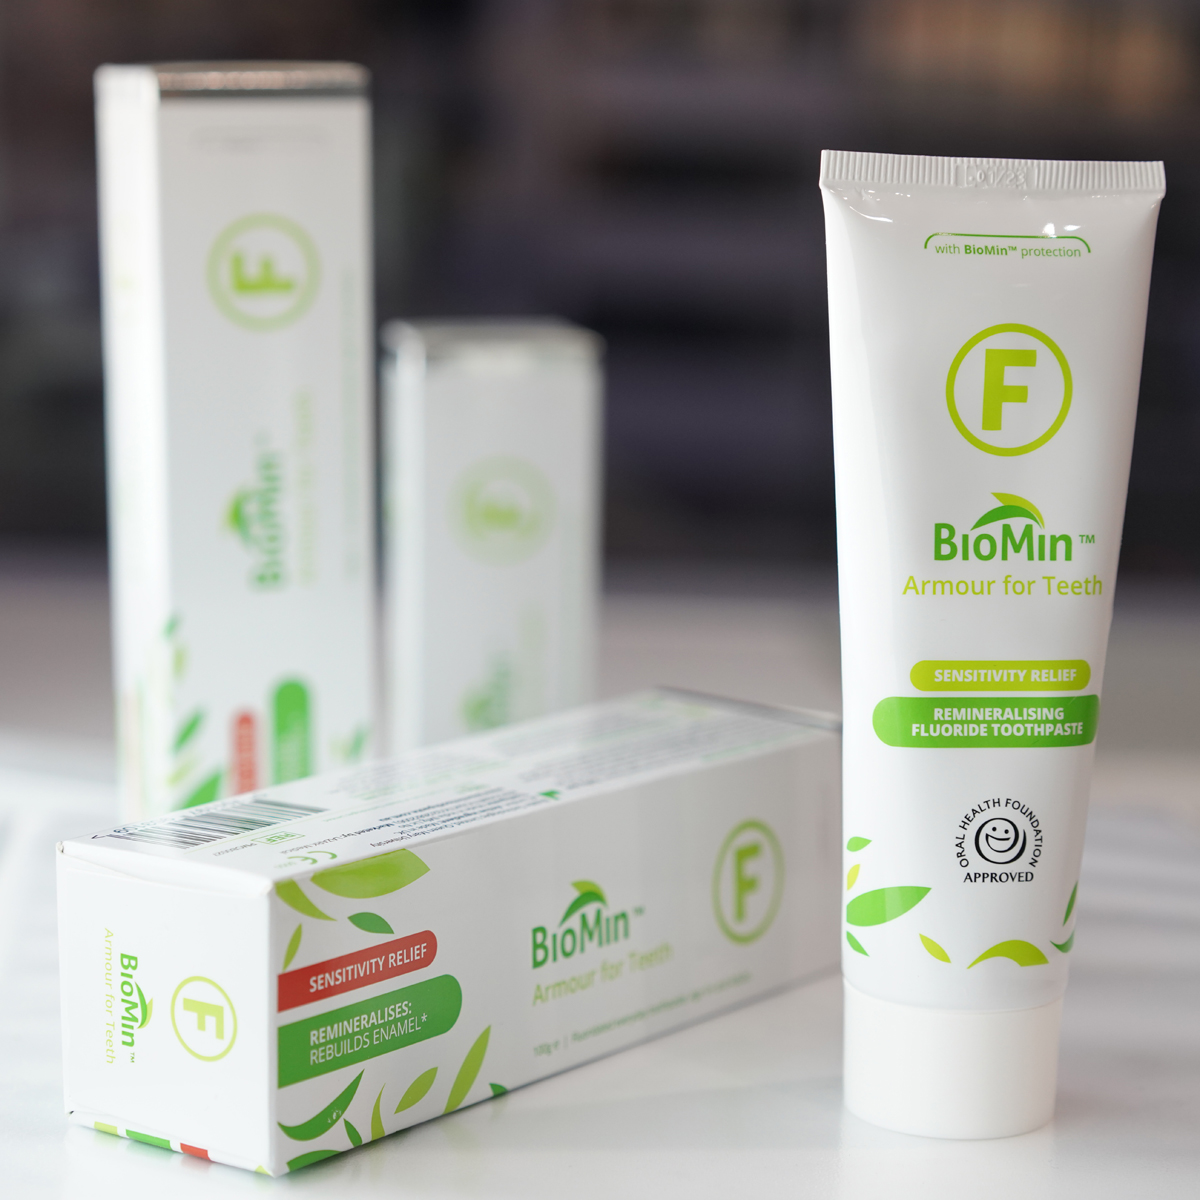 BioMin Toothpaste